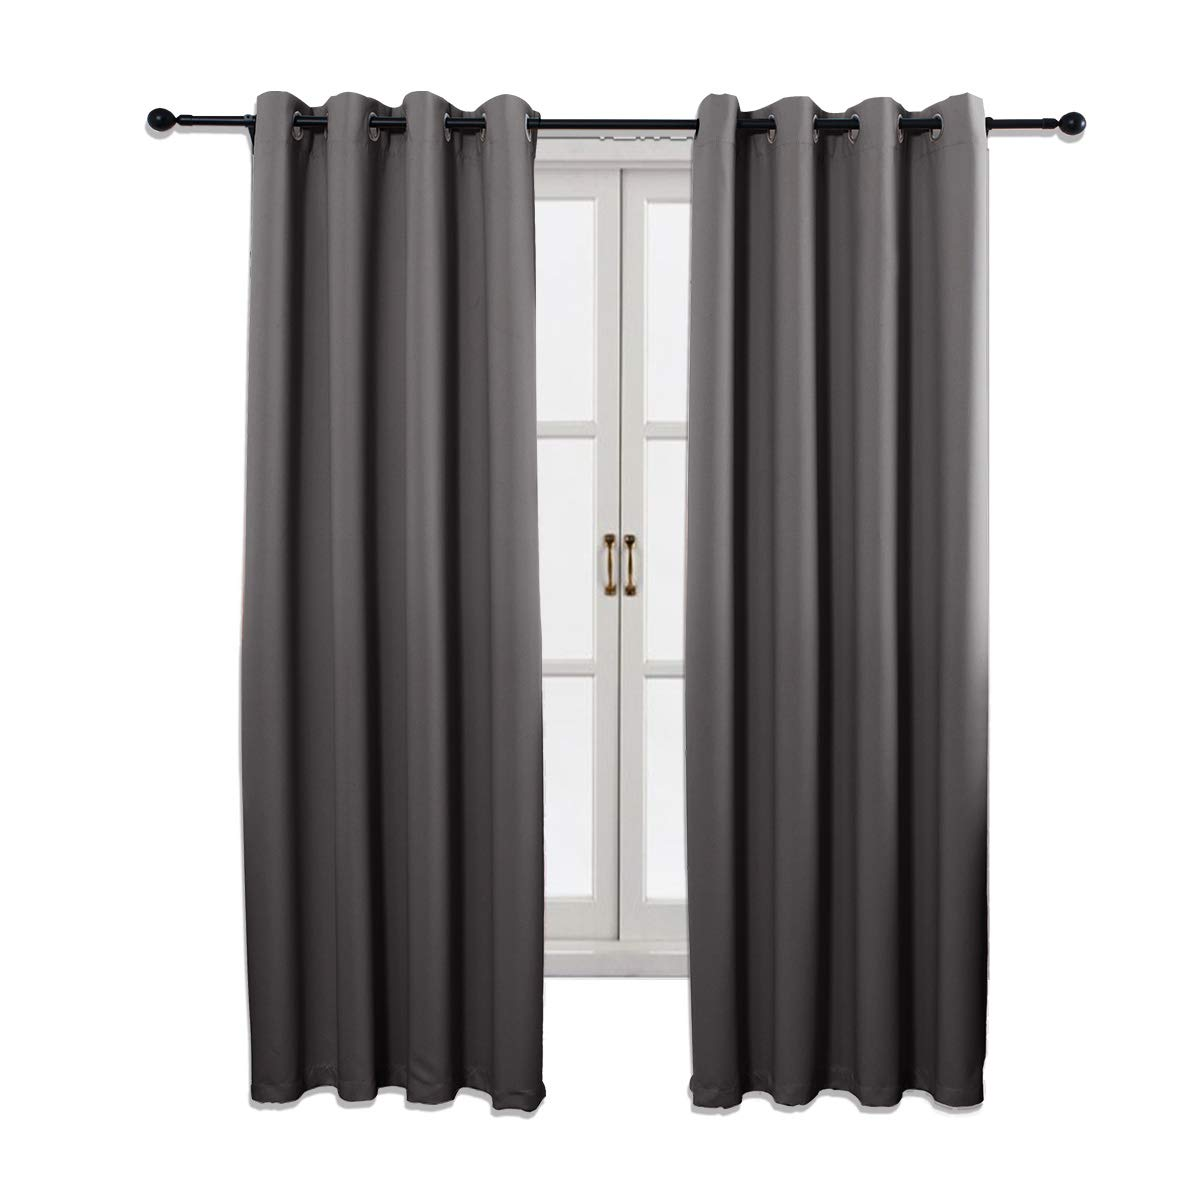 52 x 84 Inch SINOGEM Room Darkening Thermal Insulated Grommet Top Blackout Curtains for Living Room Set of 2 Panels Beige